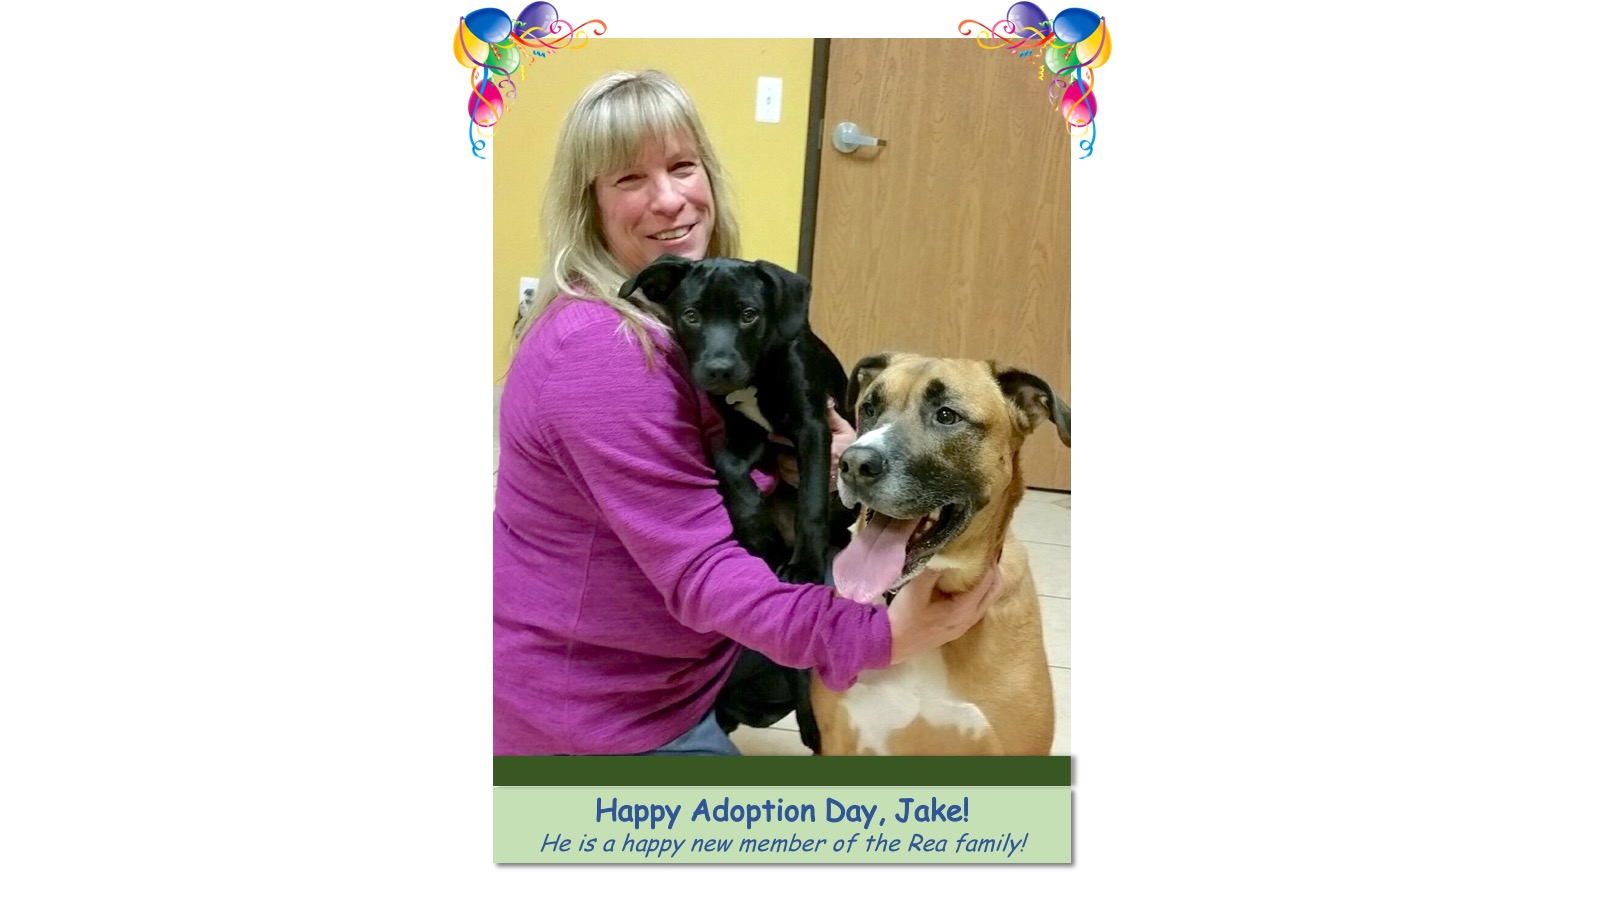 Jake_Adoption_Photo_2018.jpg